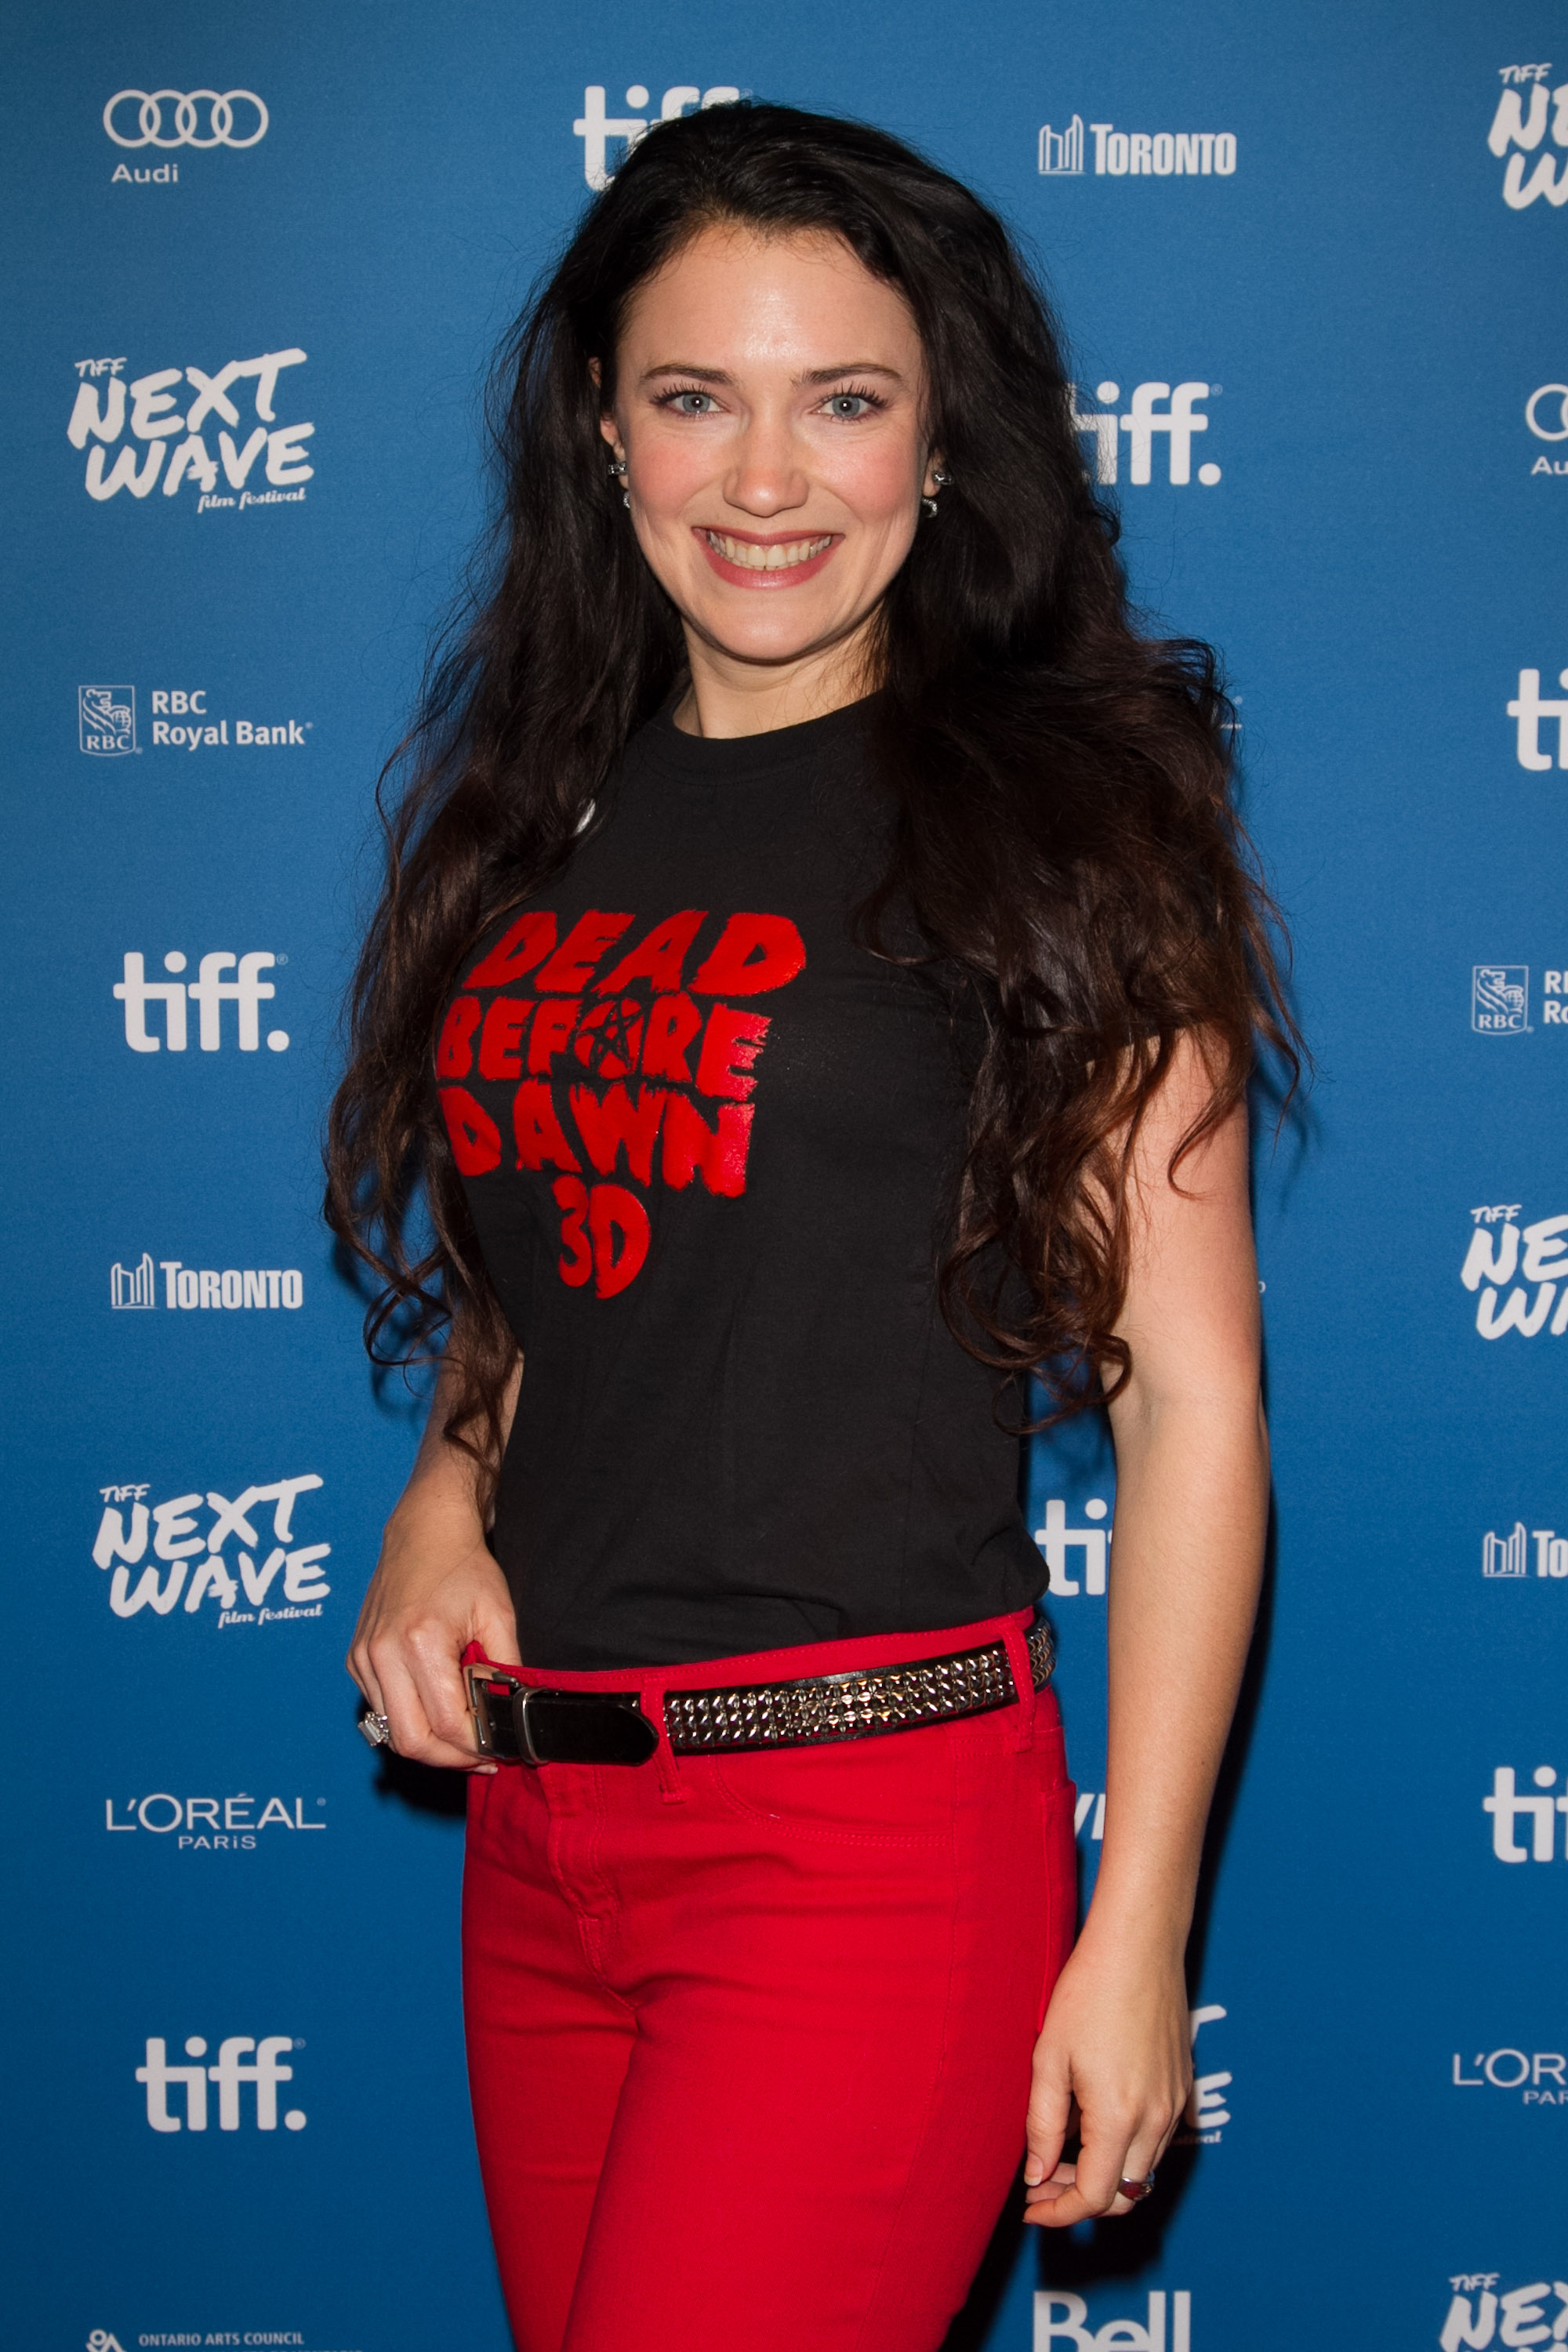 Director/Actress April Mullen arrives at the TIFF Next Wave Film Festival in Toronto for the North American Premiere of Dead Before Dawn 3D.  Photo by: Sarjoun Faour, WireImage/Getty for TIFF